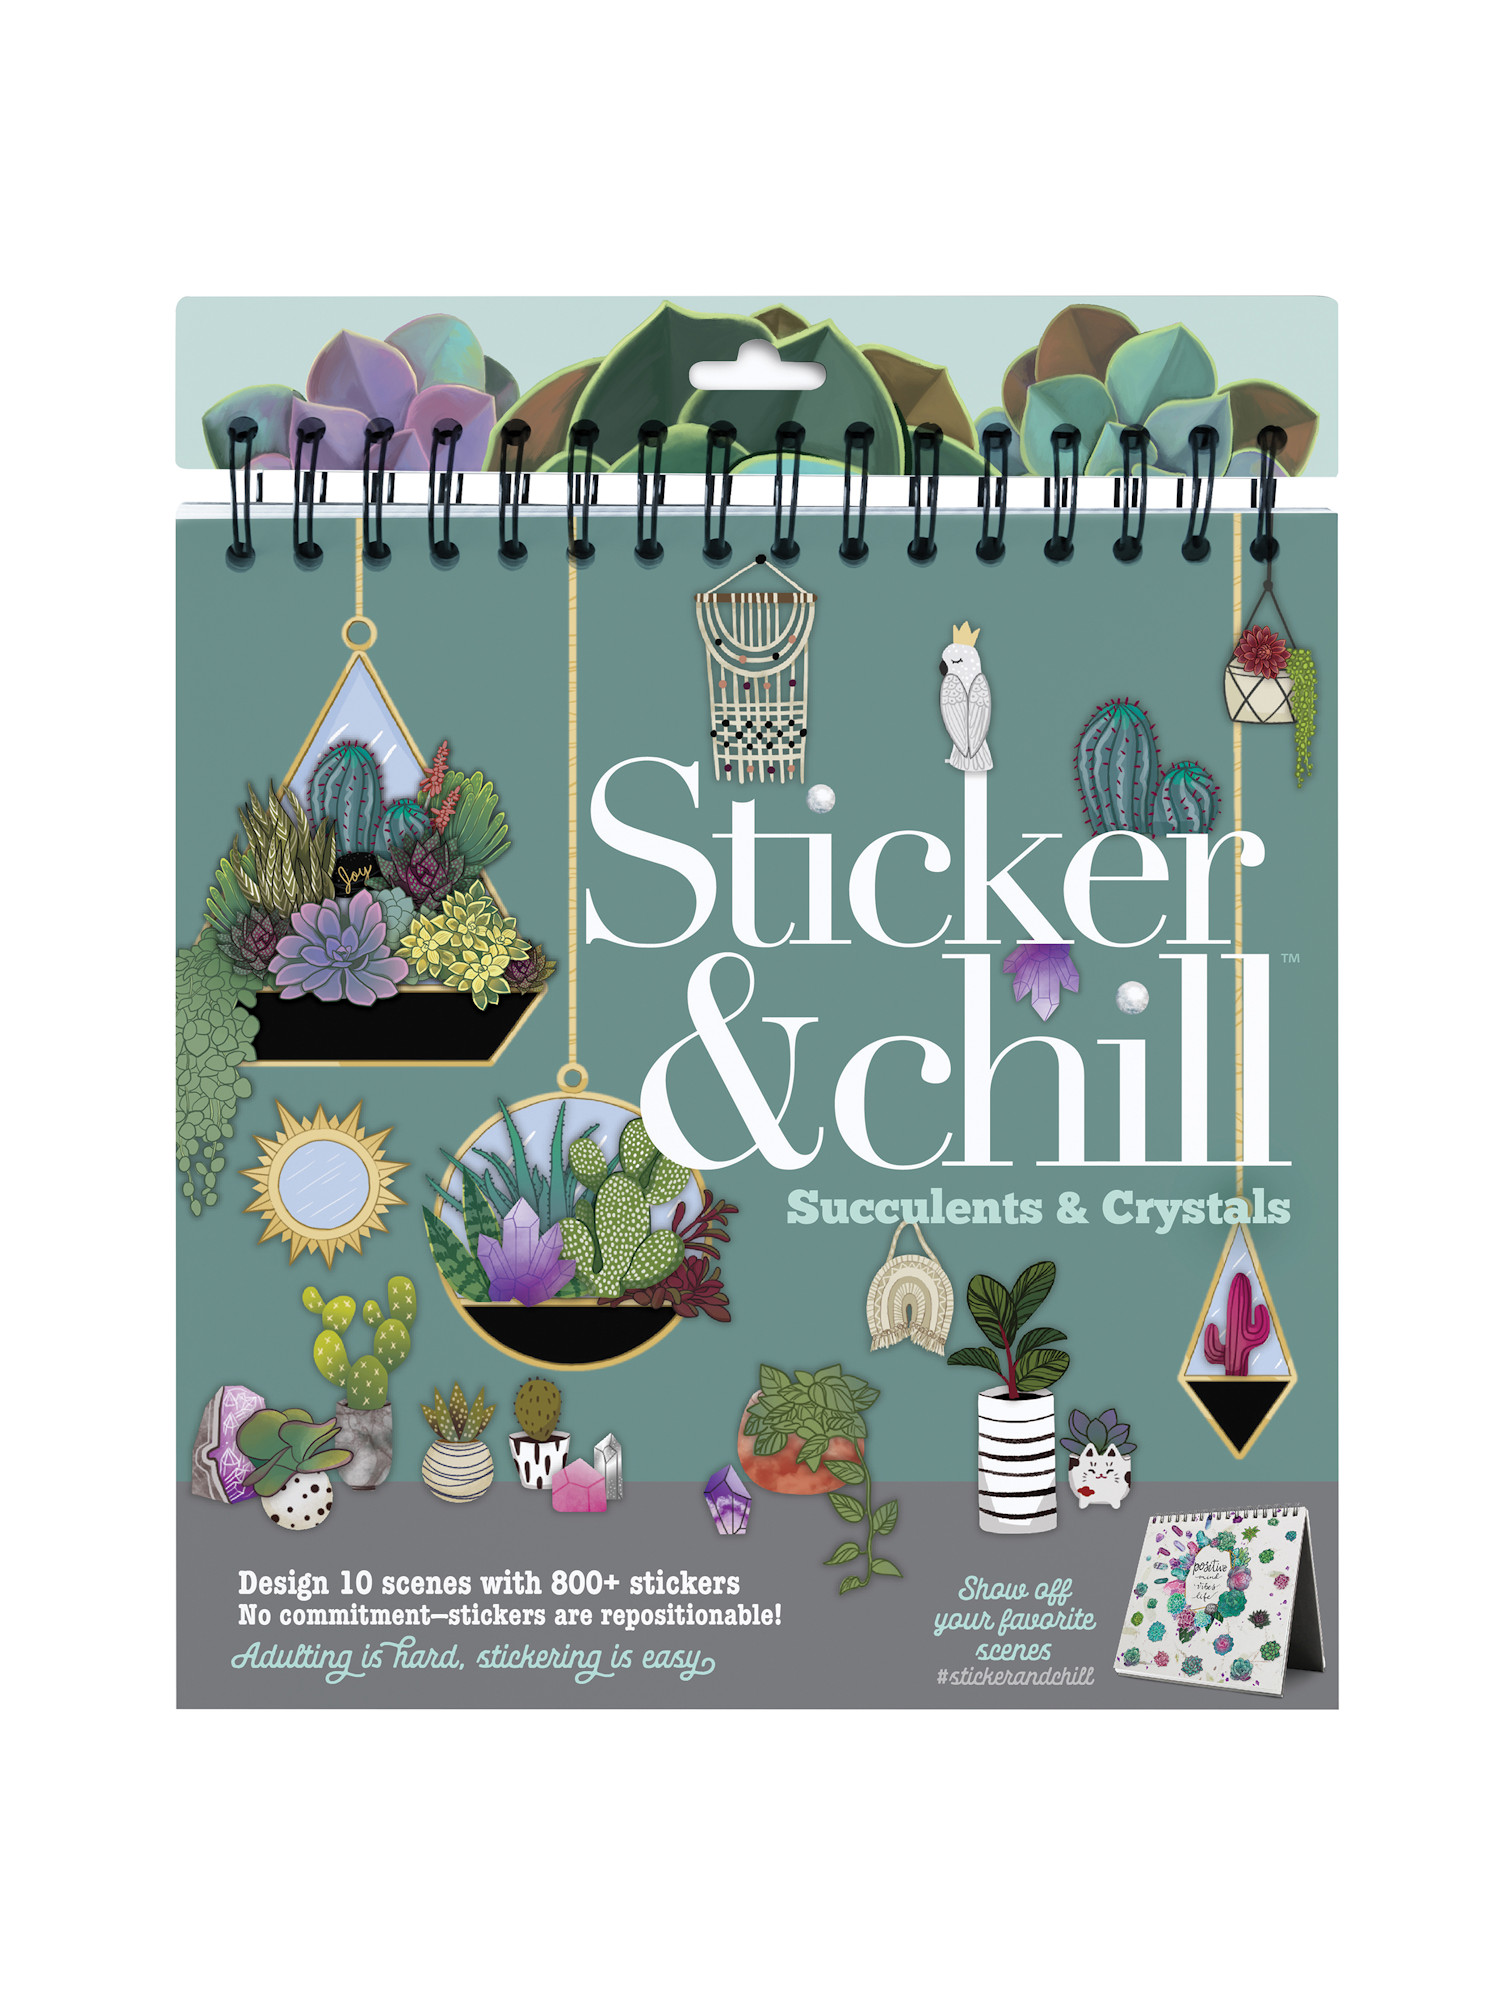 Ann Williams Group Succulent Sticker Chill Set Repositionable Plants And Crystals Sticker Book 10 Scenes 800 Stickers Easel Style Walmart Com Walmart Com